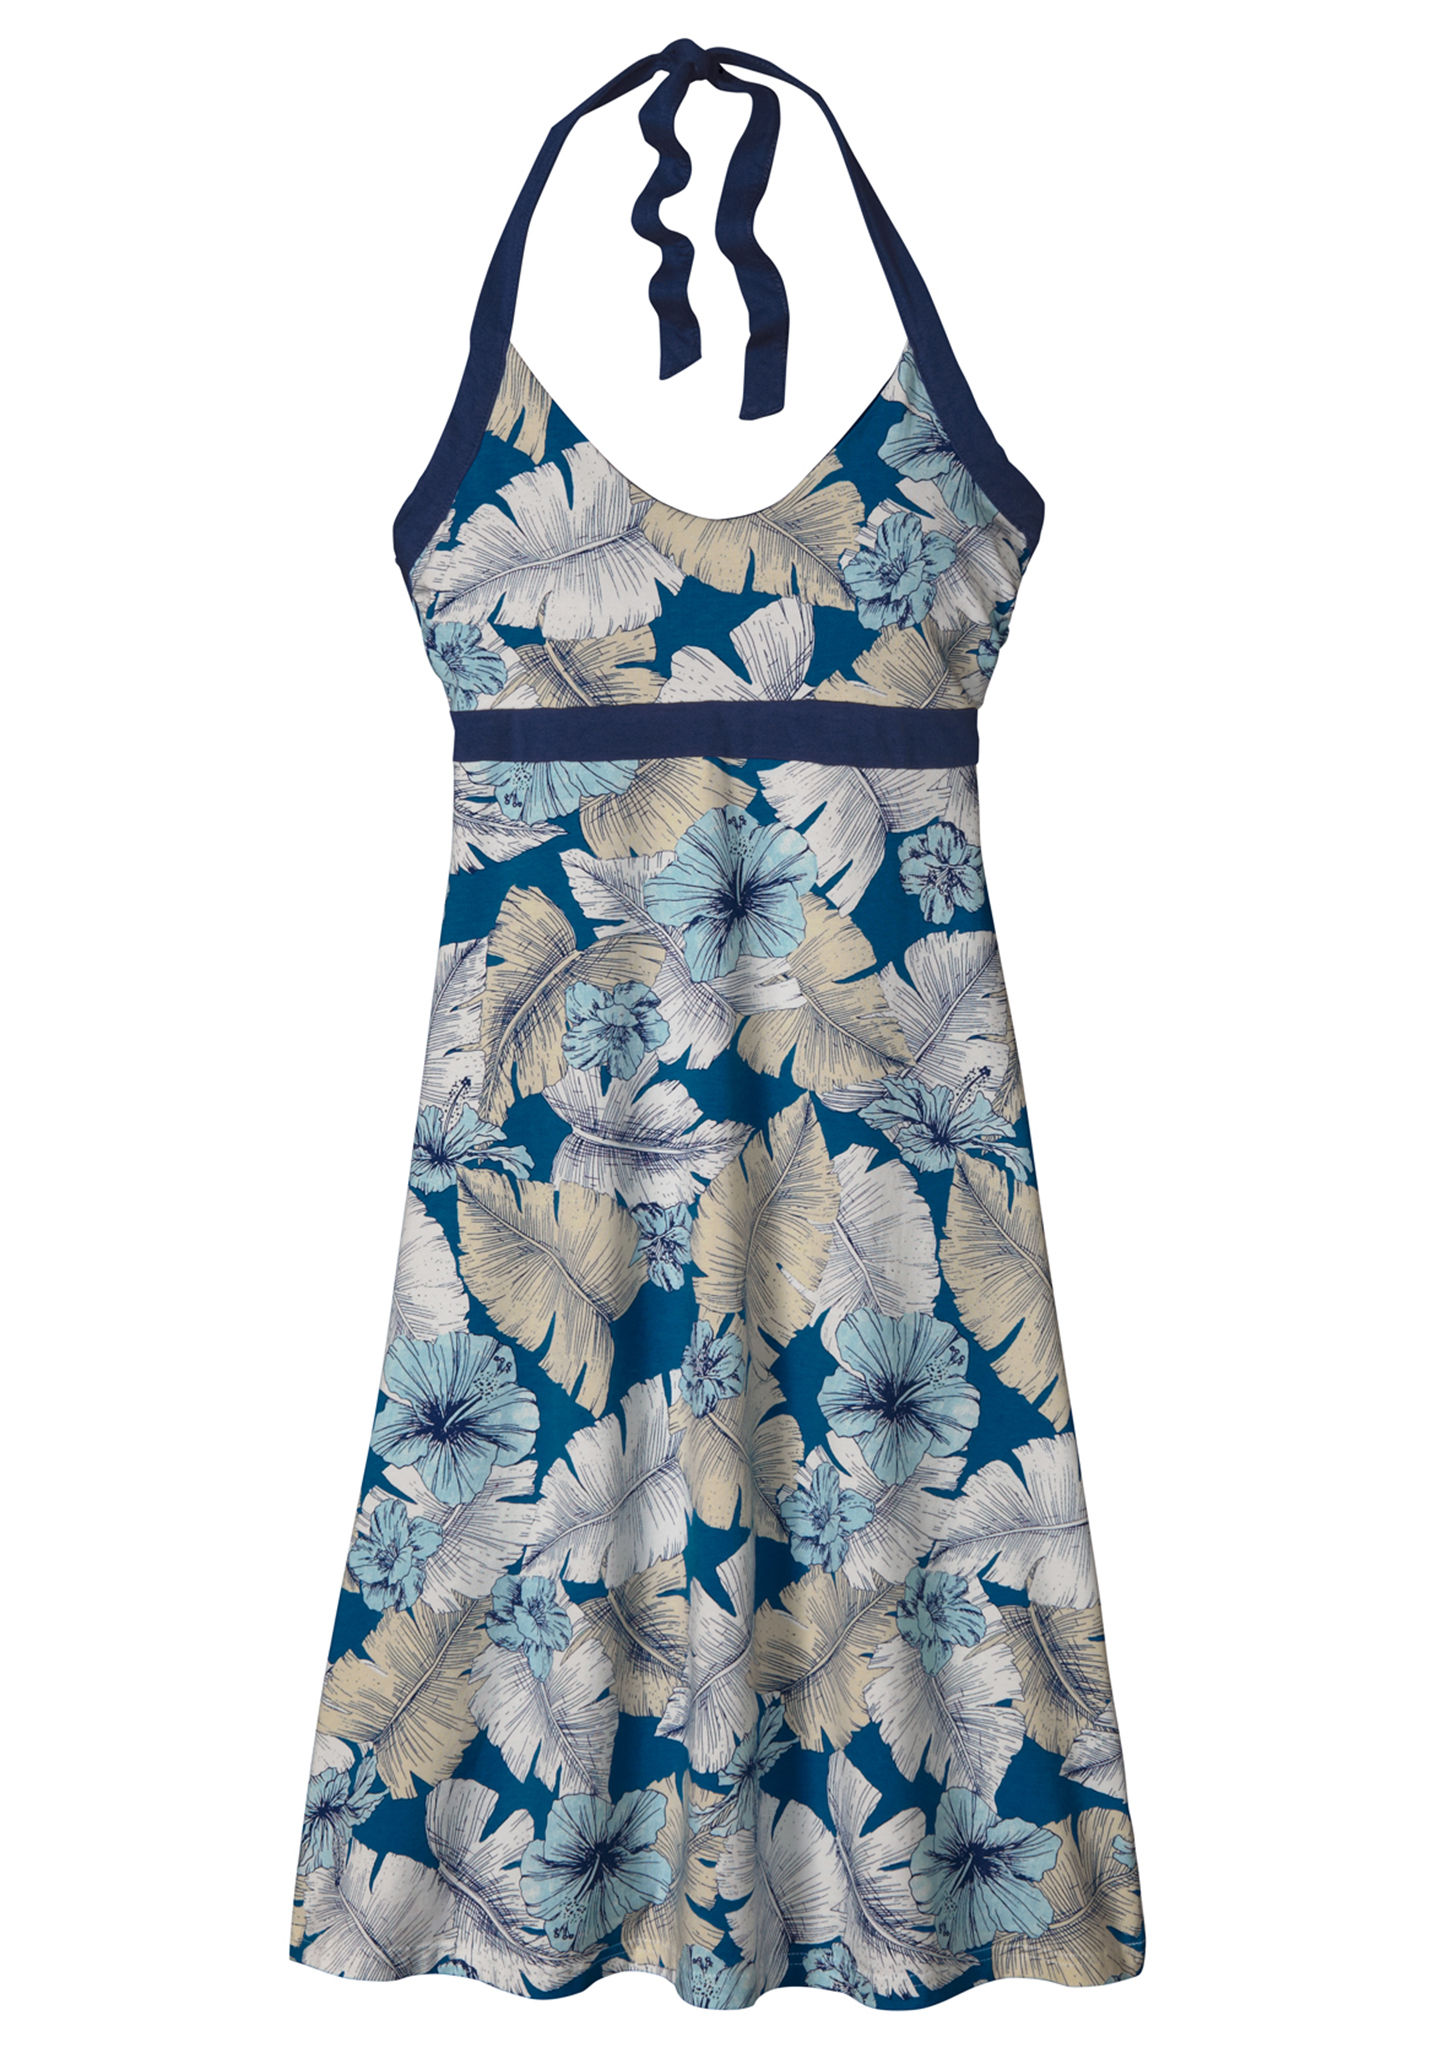 Patagonia Iliana Halter - Kleid für Damen - Blau - Planet Sports